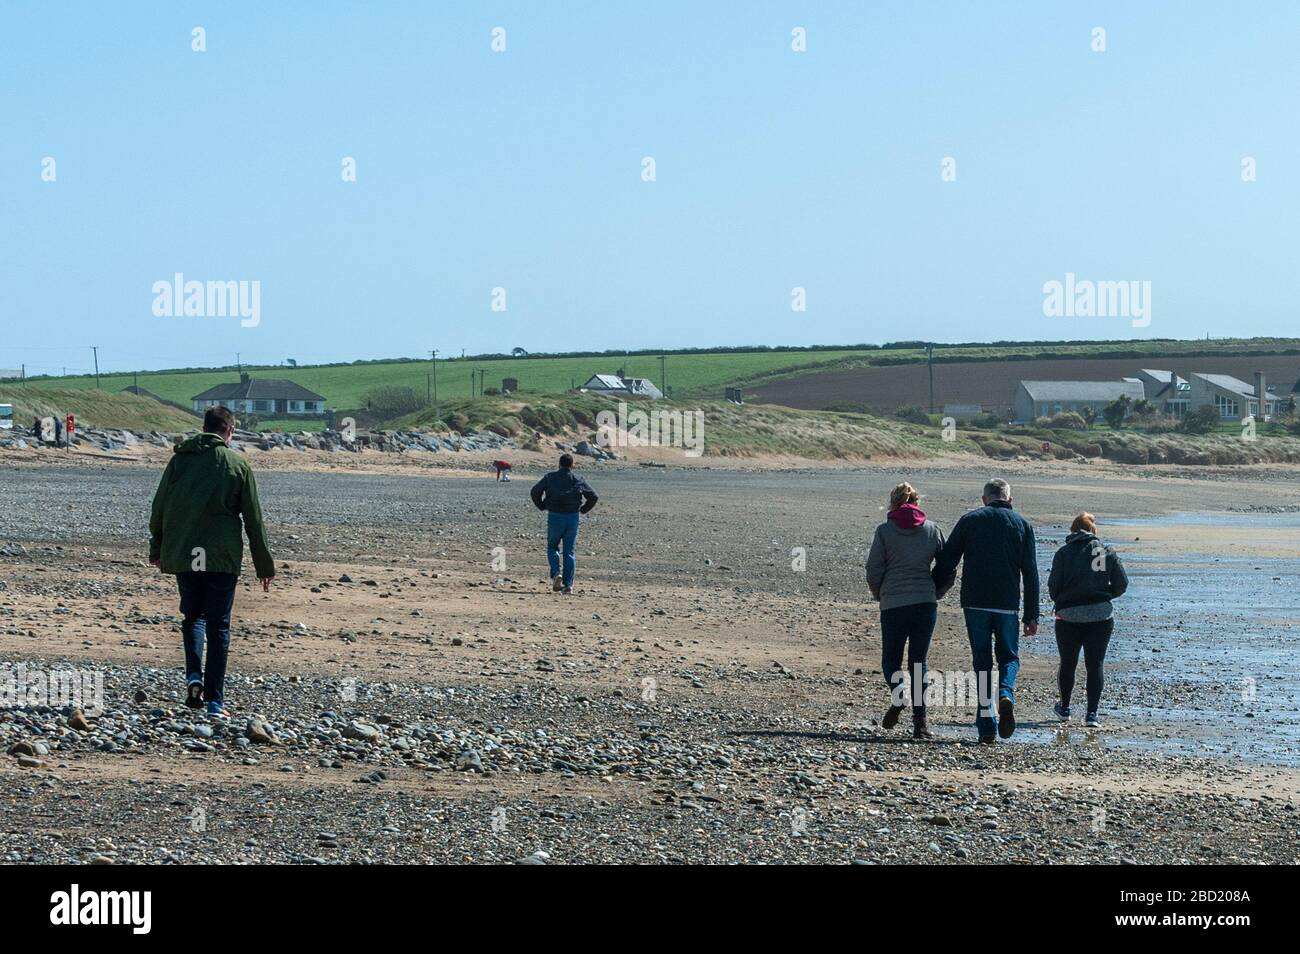 garrettstown-west-cork-ireland-6th-apr-2020-people-were-on-the-beach-at-garrettstown-today-and-most-were-observing-the-governments-social-distancing-guidelines-issued-due-to-the-covid-19-pandemic-credit-andy-gibsonalamy-live-news-2BD208A.jpg